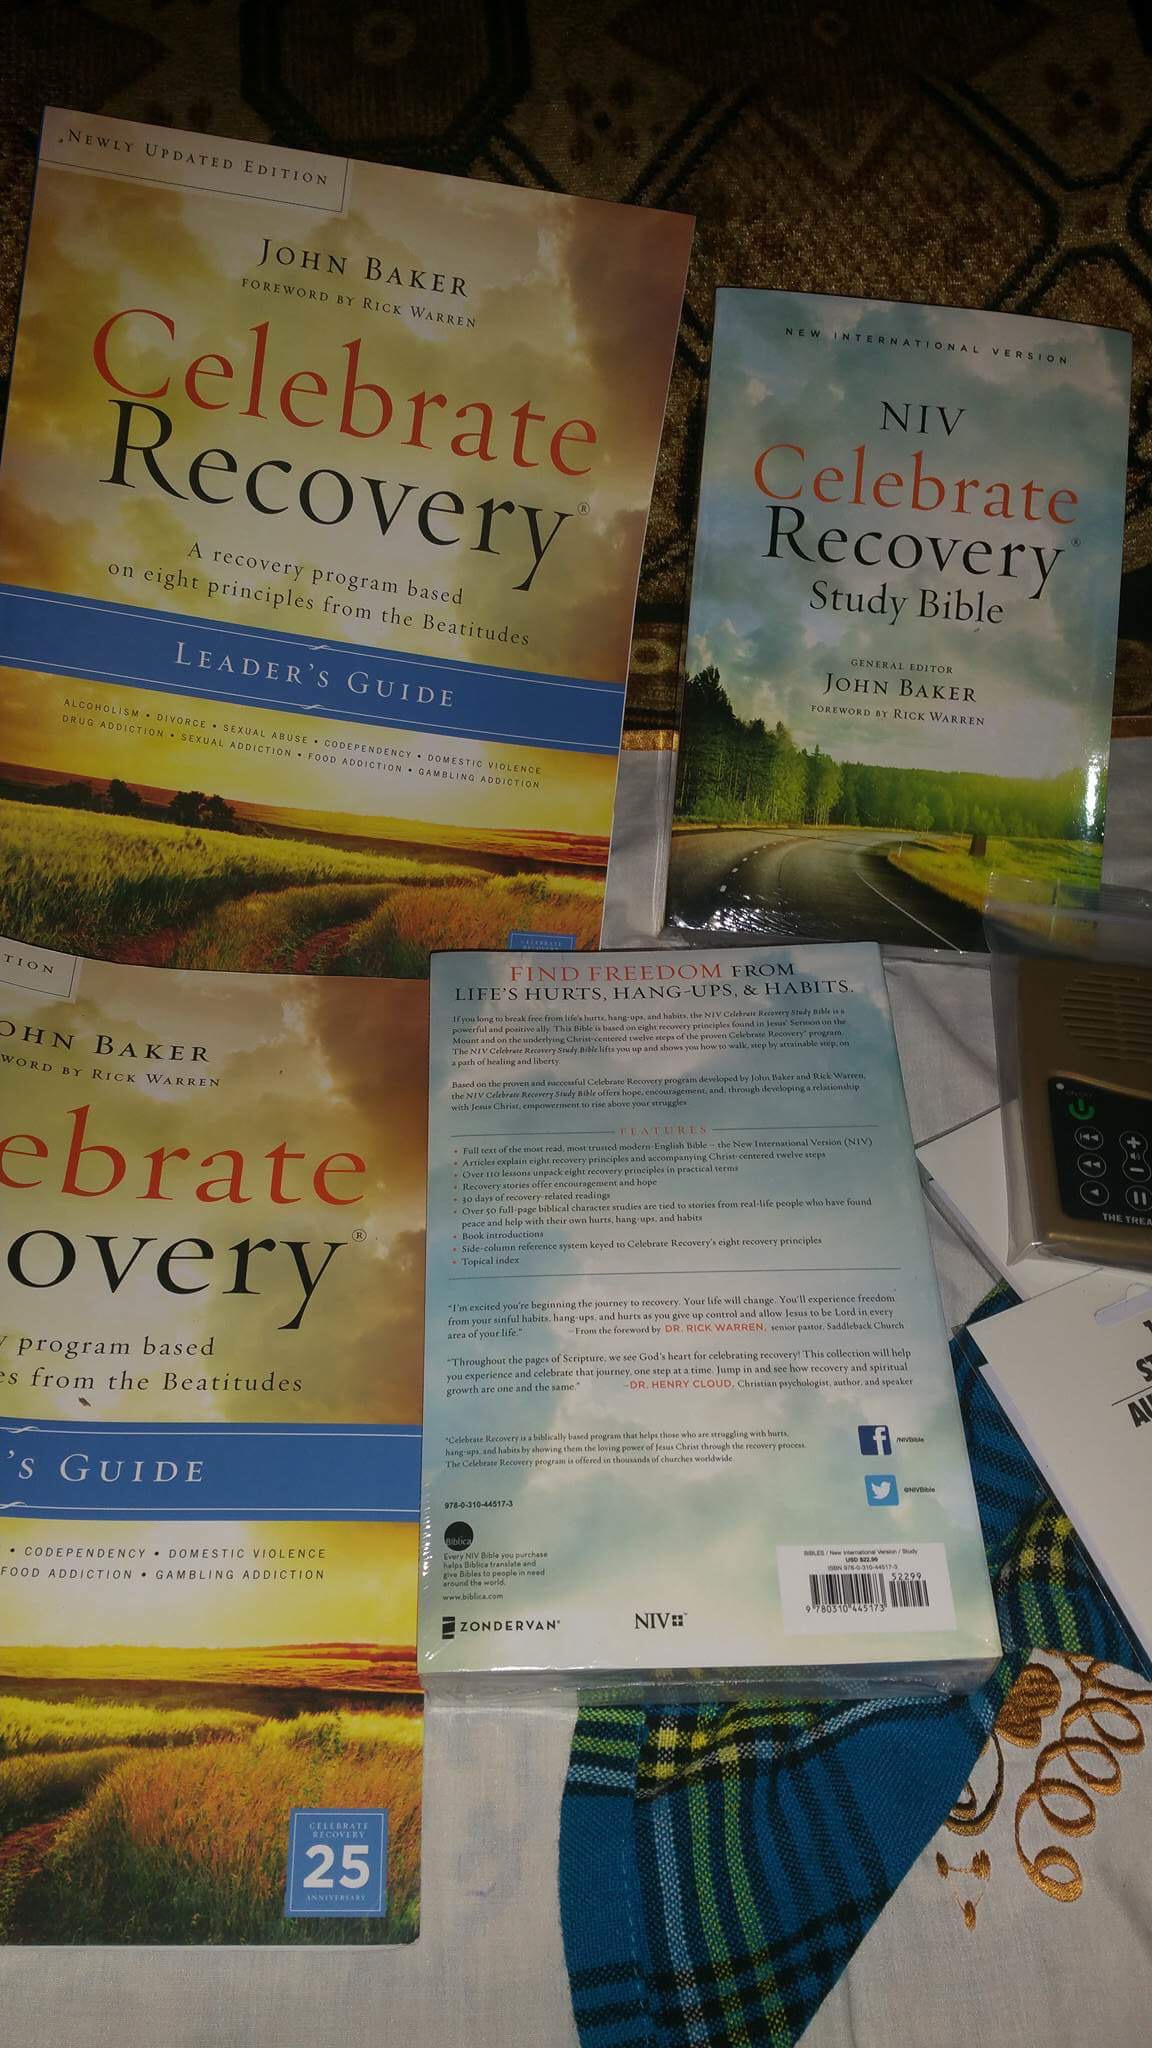 Celebrate Recovery materials